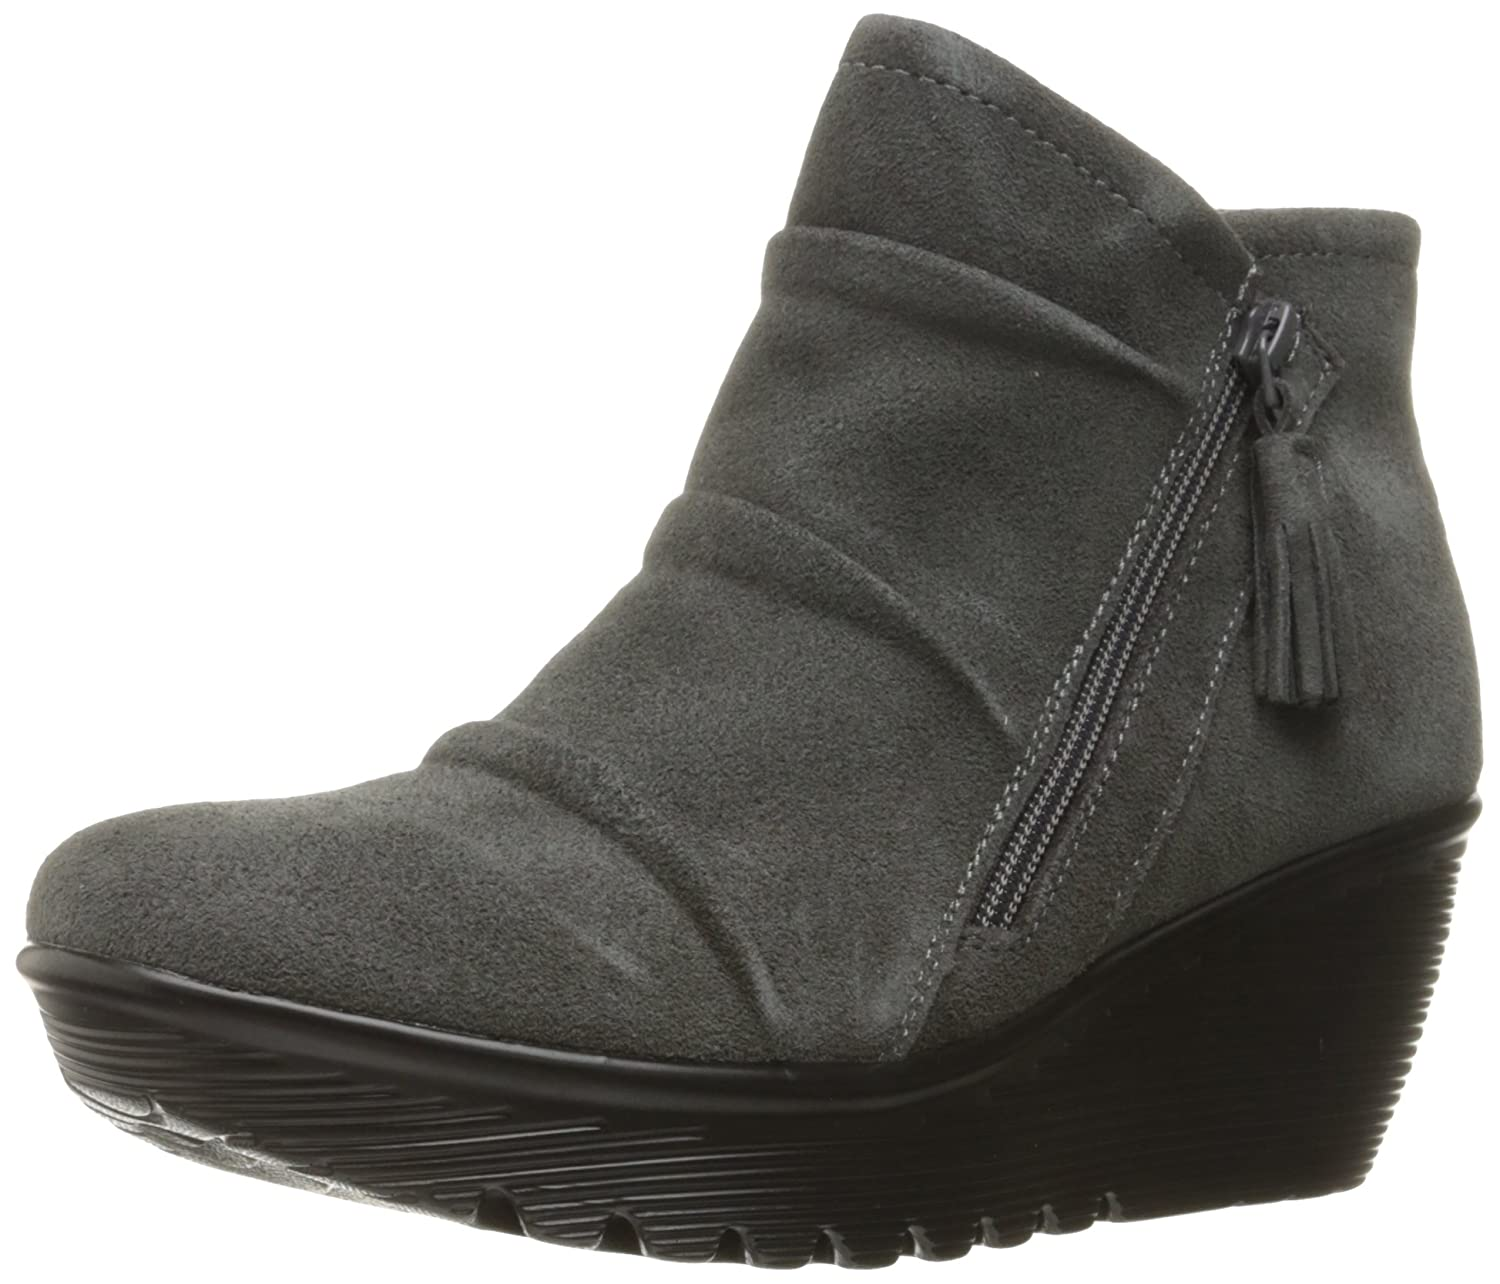 Skechers Womens Parallel-Triple Threat Ankle Bootie  5 B(M) US|Charcoal Suede